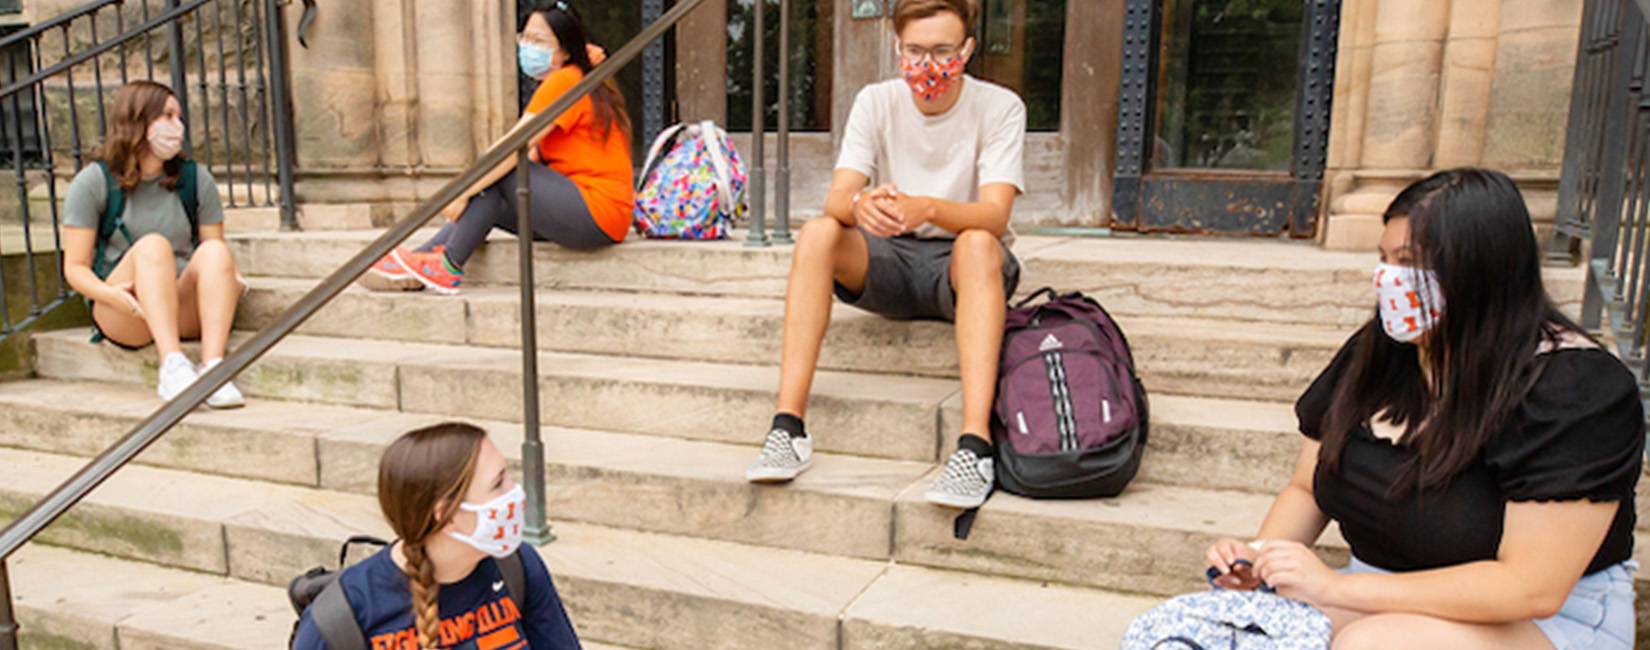 University of Illinois Urbana-Champaign students outside campus building sitting on steps.Cropped